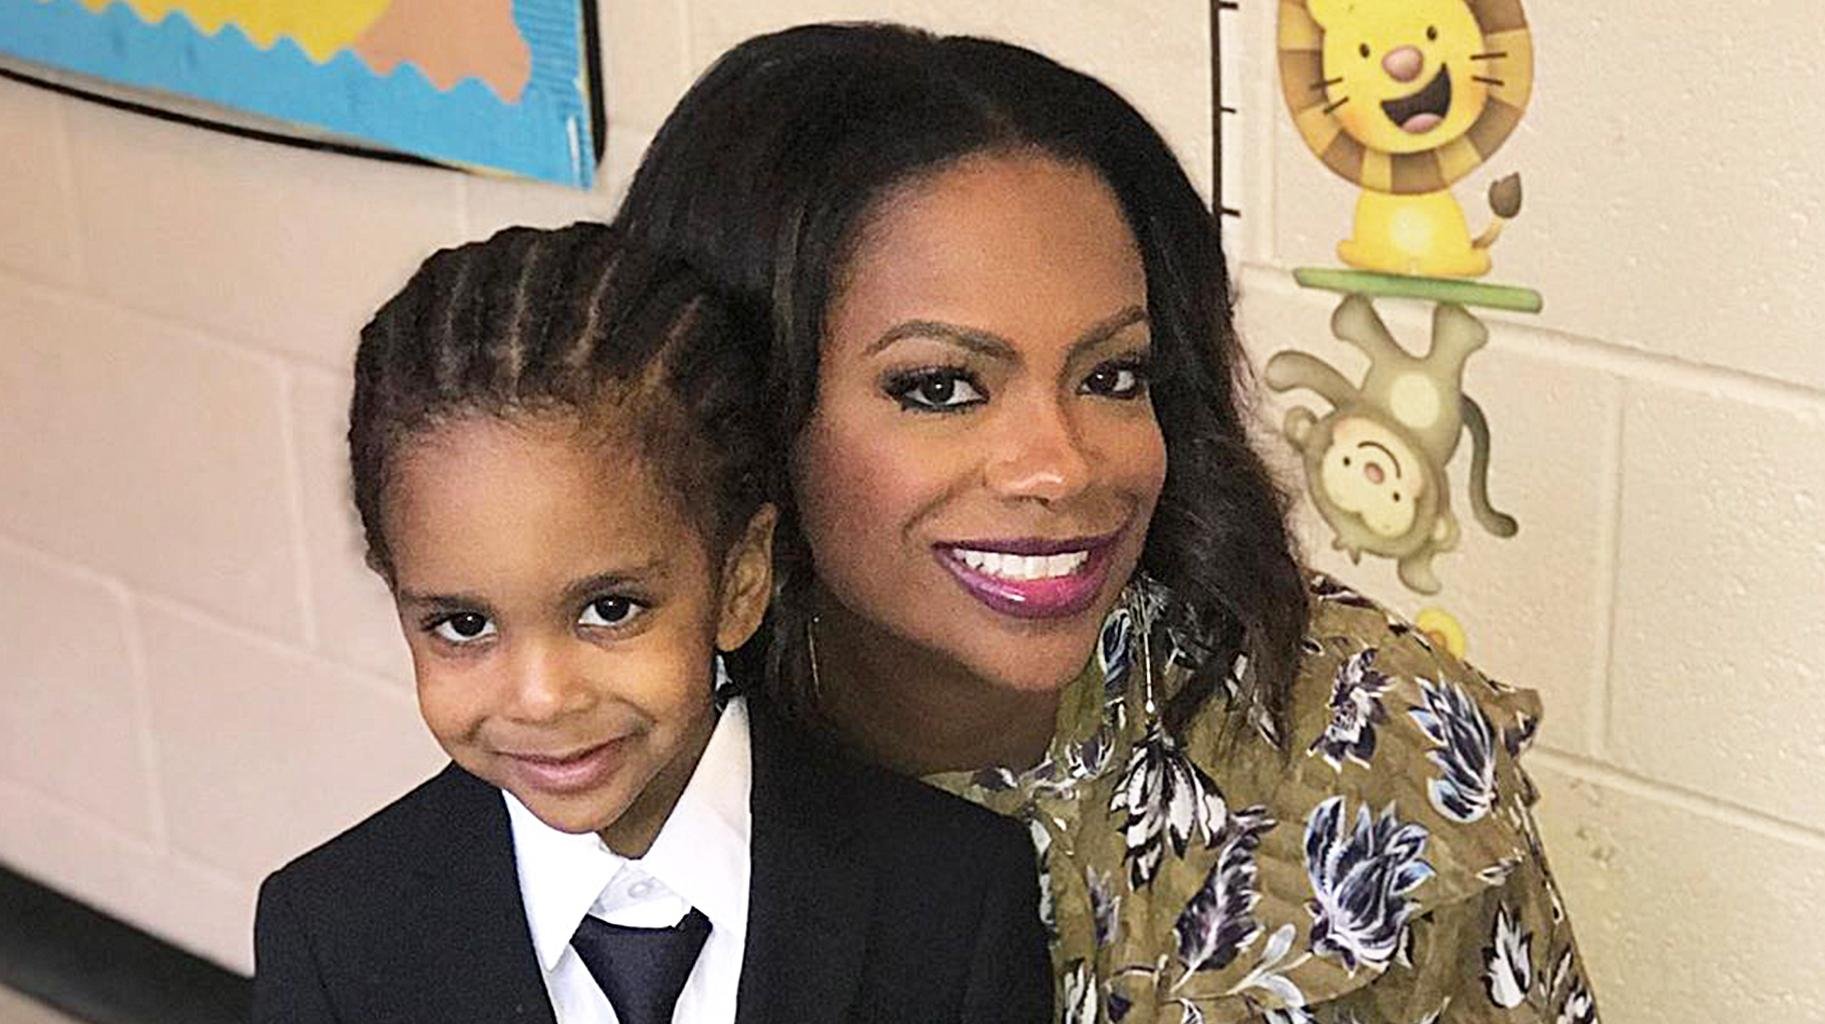 Kandi Burruss Gushes Over Her 'Cool' Son, Ace Wells Tucker - See Her Latest Photos